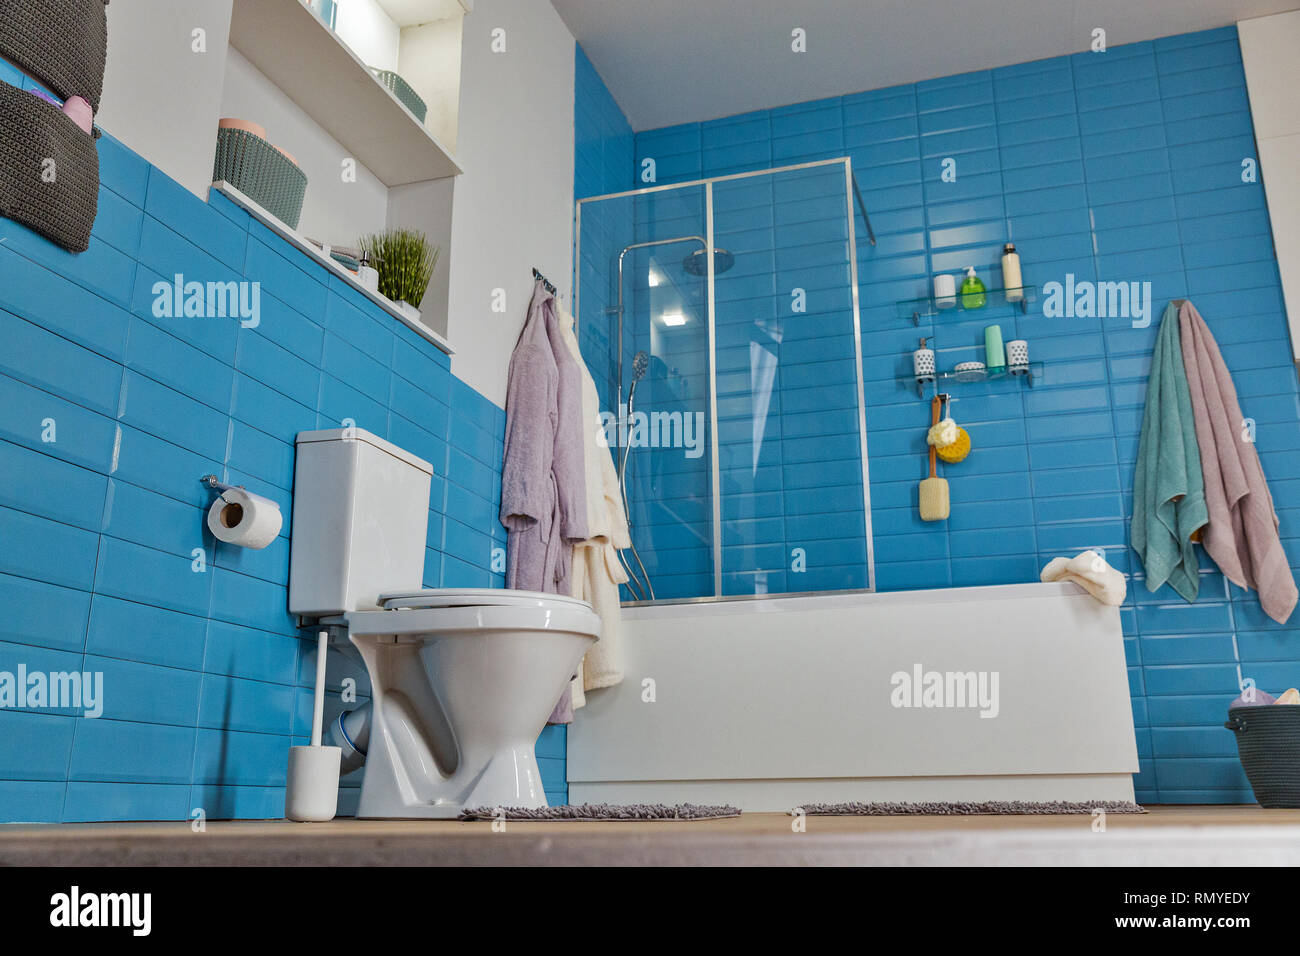 Modern Bathroom With White Toilet Bowl And Blue Tile Floor View Stock Photo Alamy